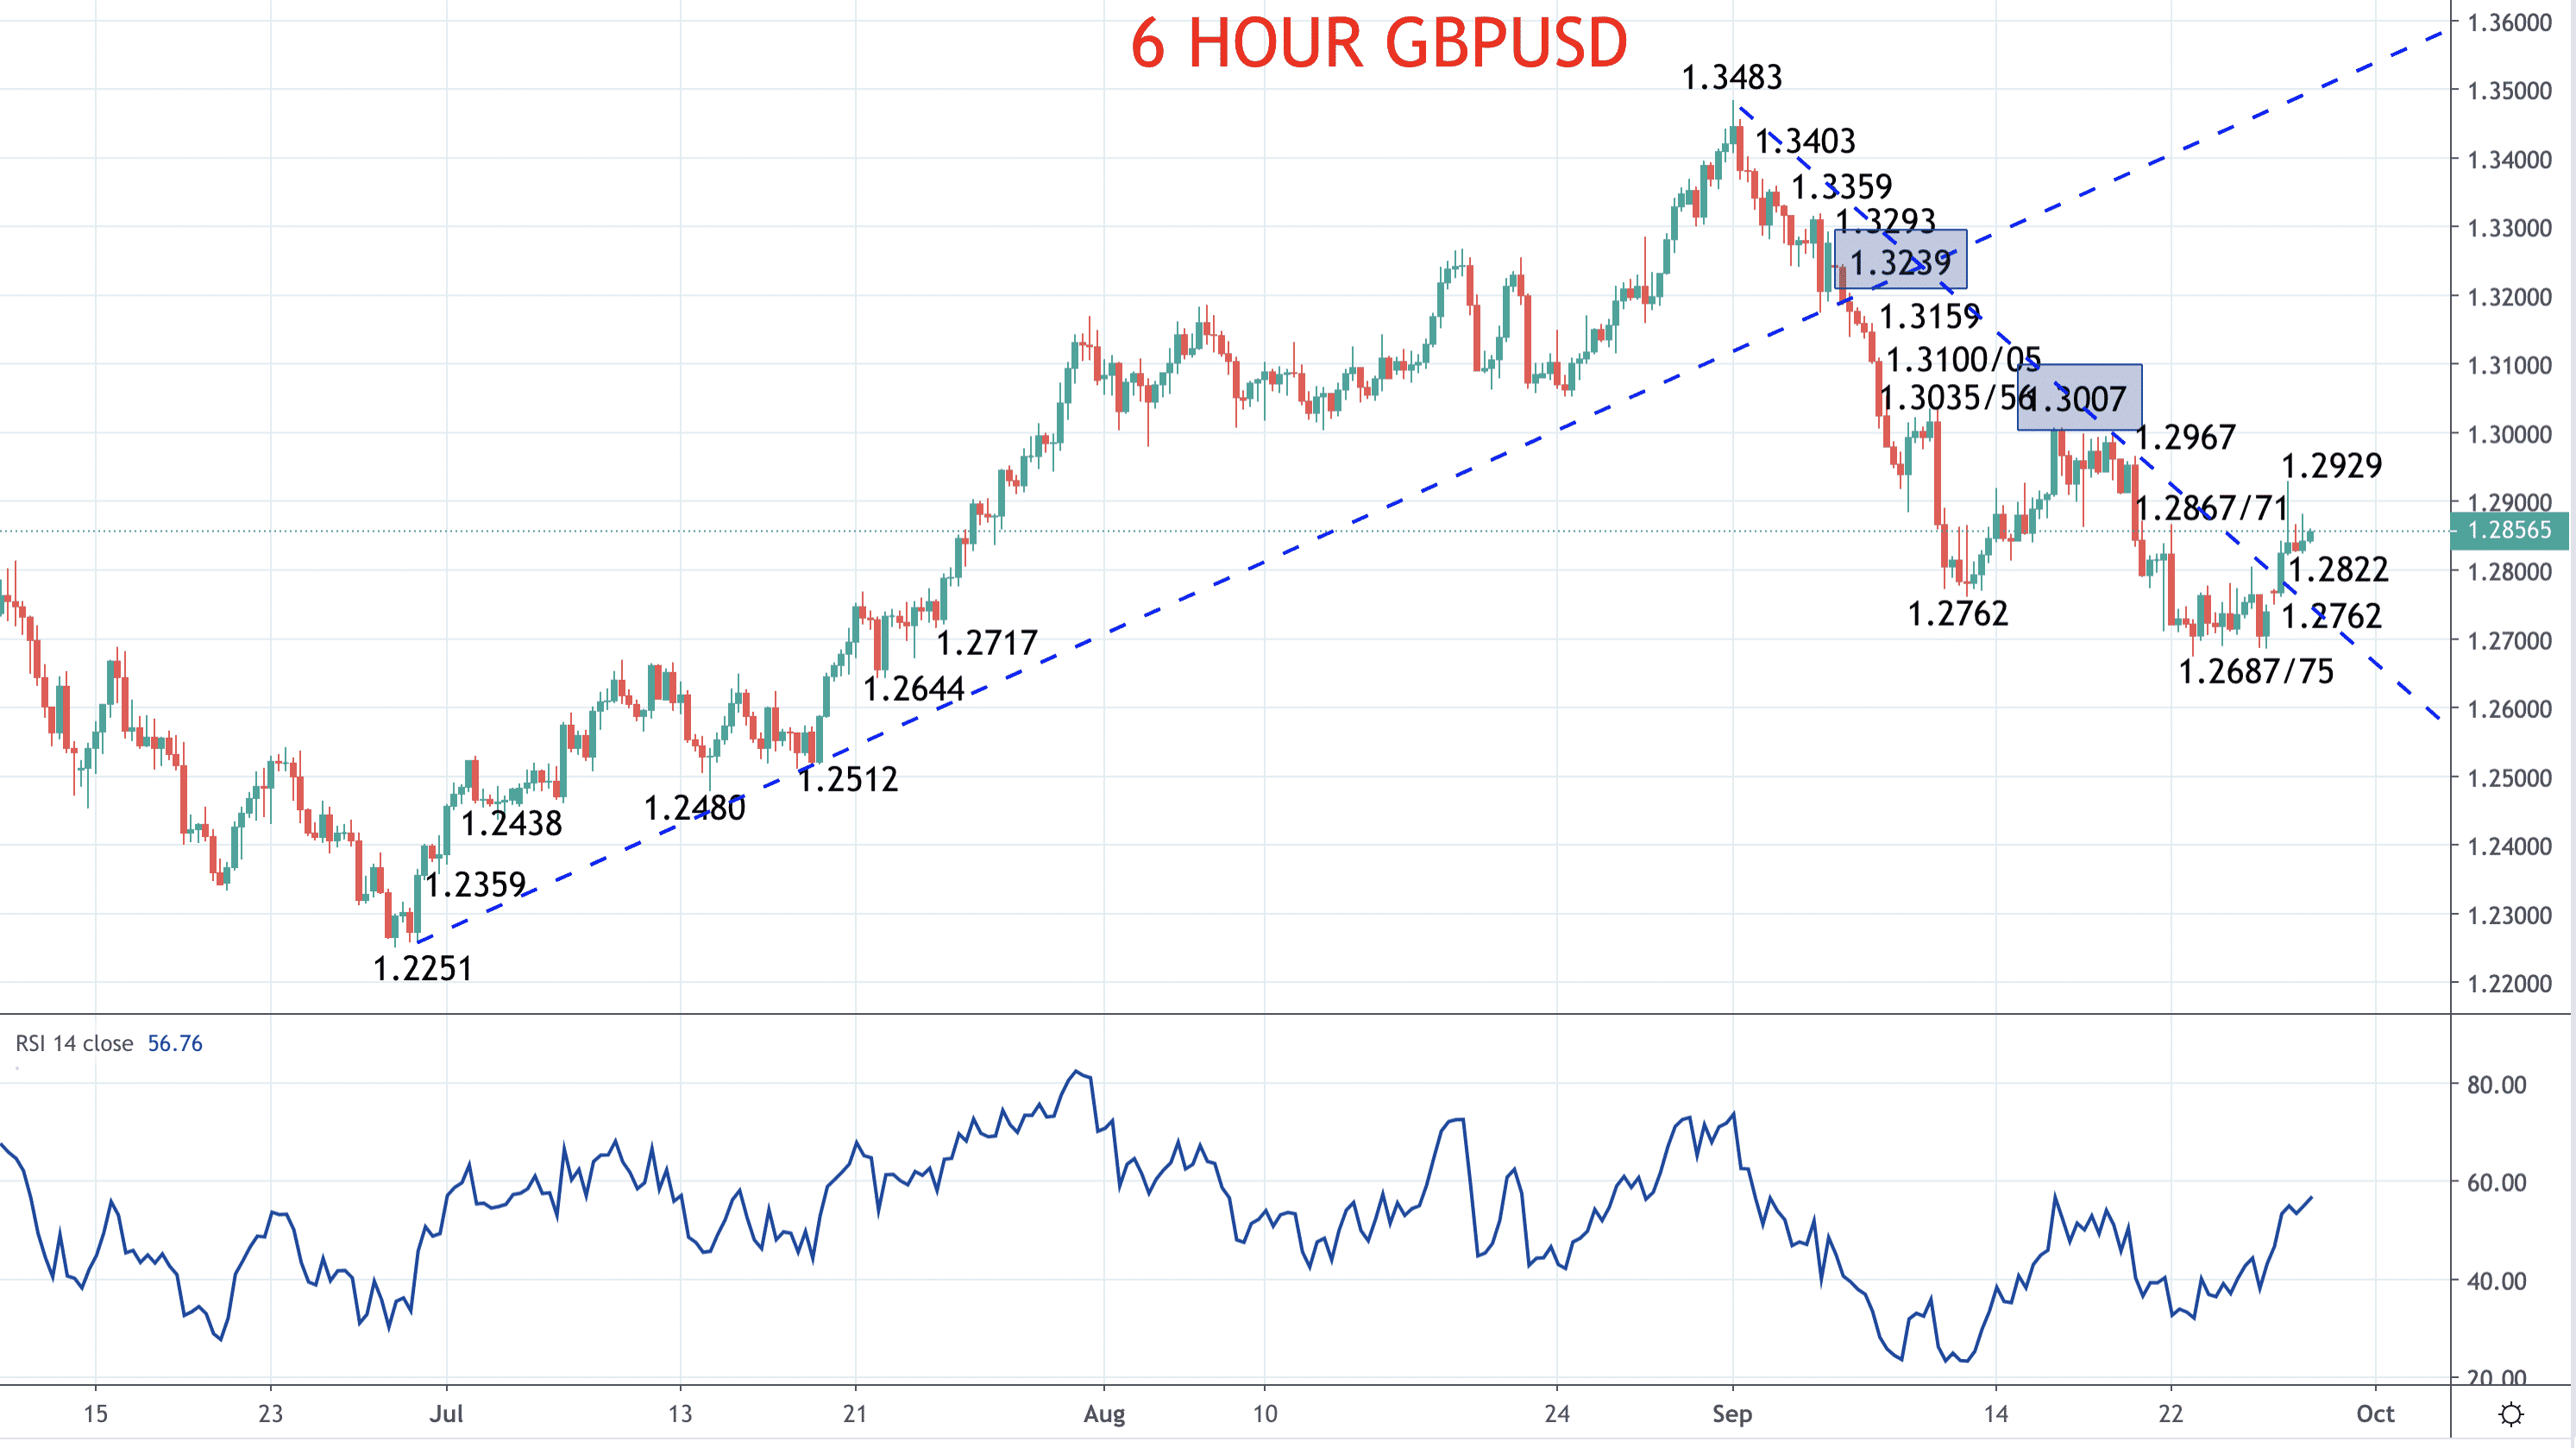 Pound risk flips higher, for now – GBPUSD forecast Image